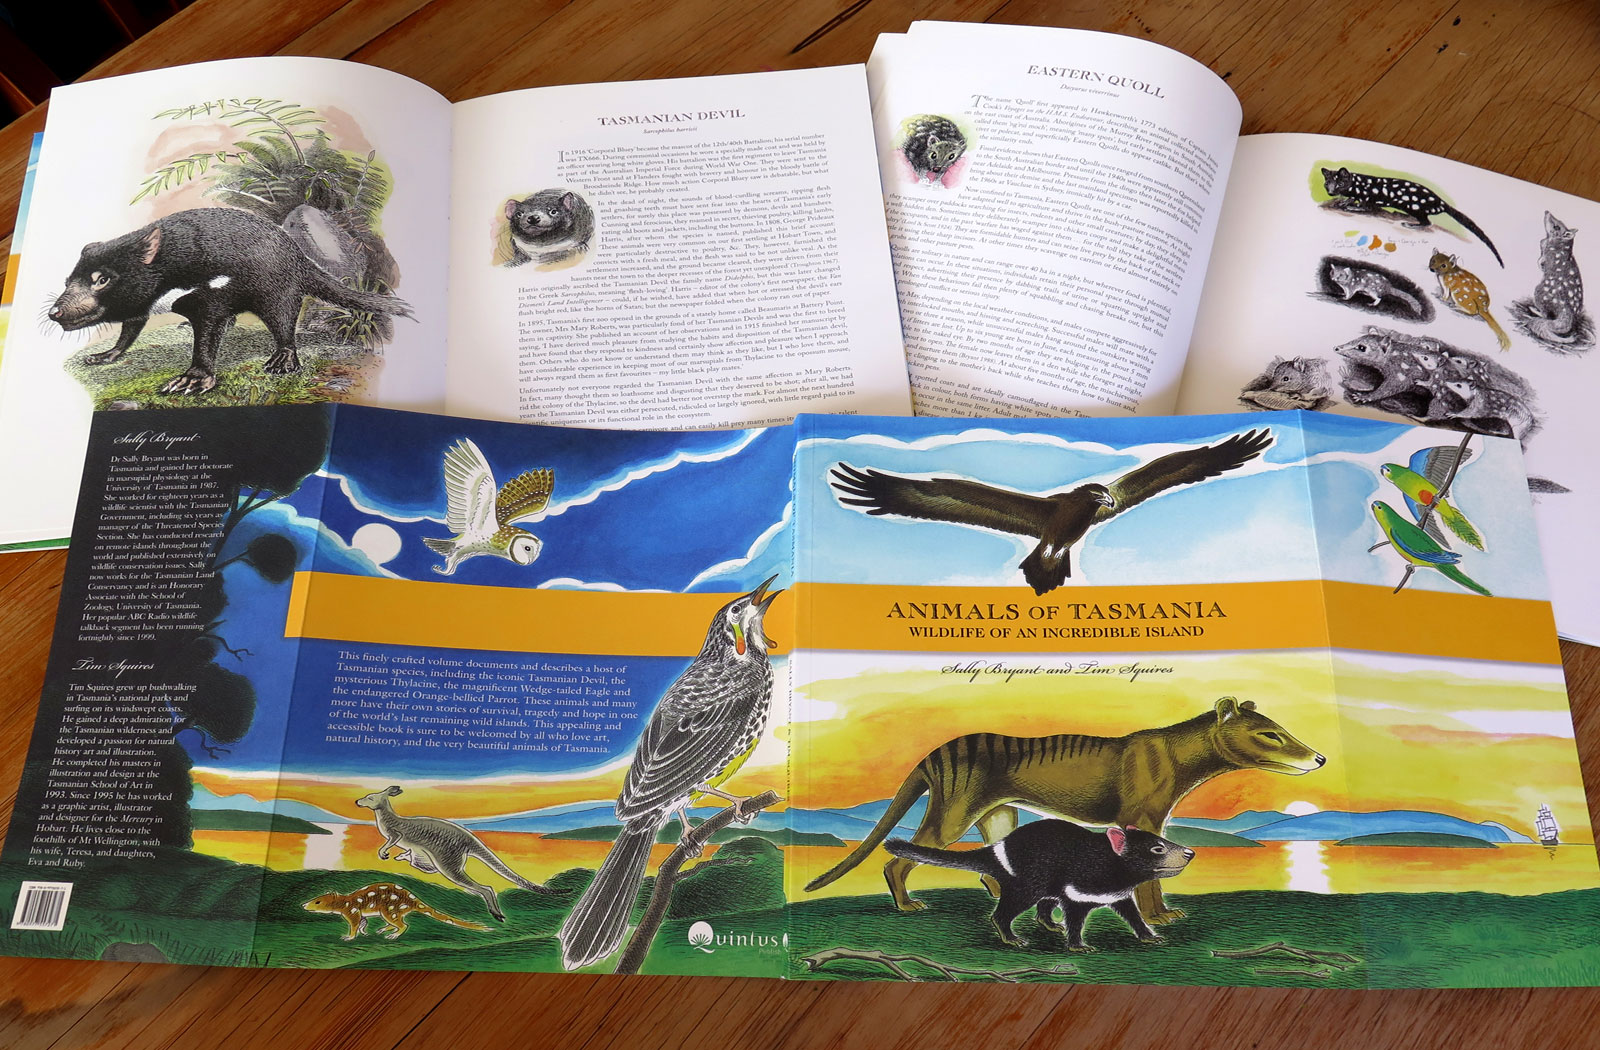 Animals of Tasmania by Sally Bryant and Tim Squires